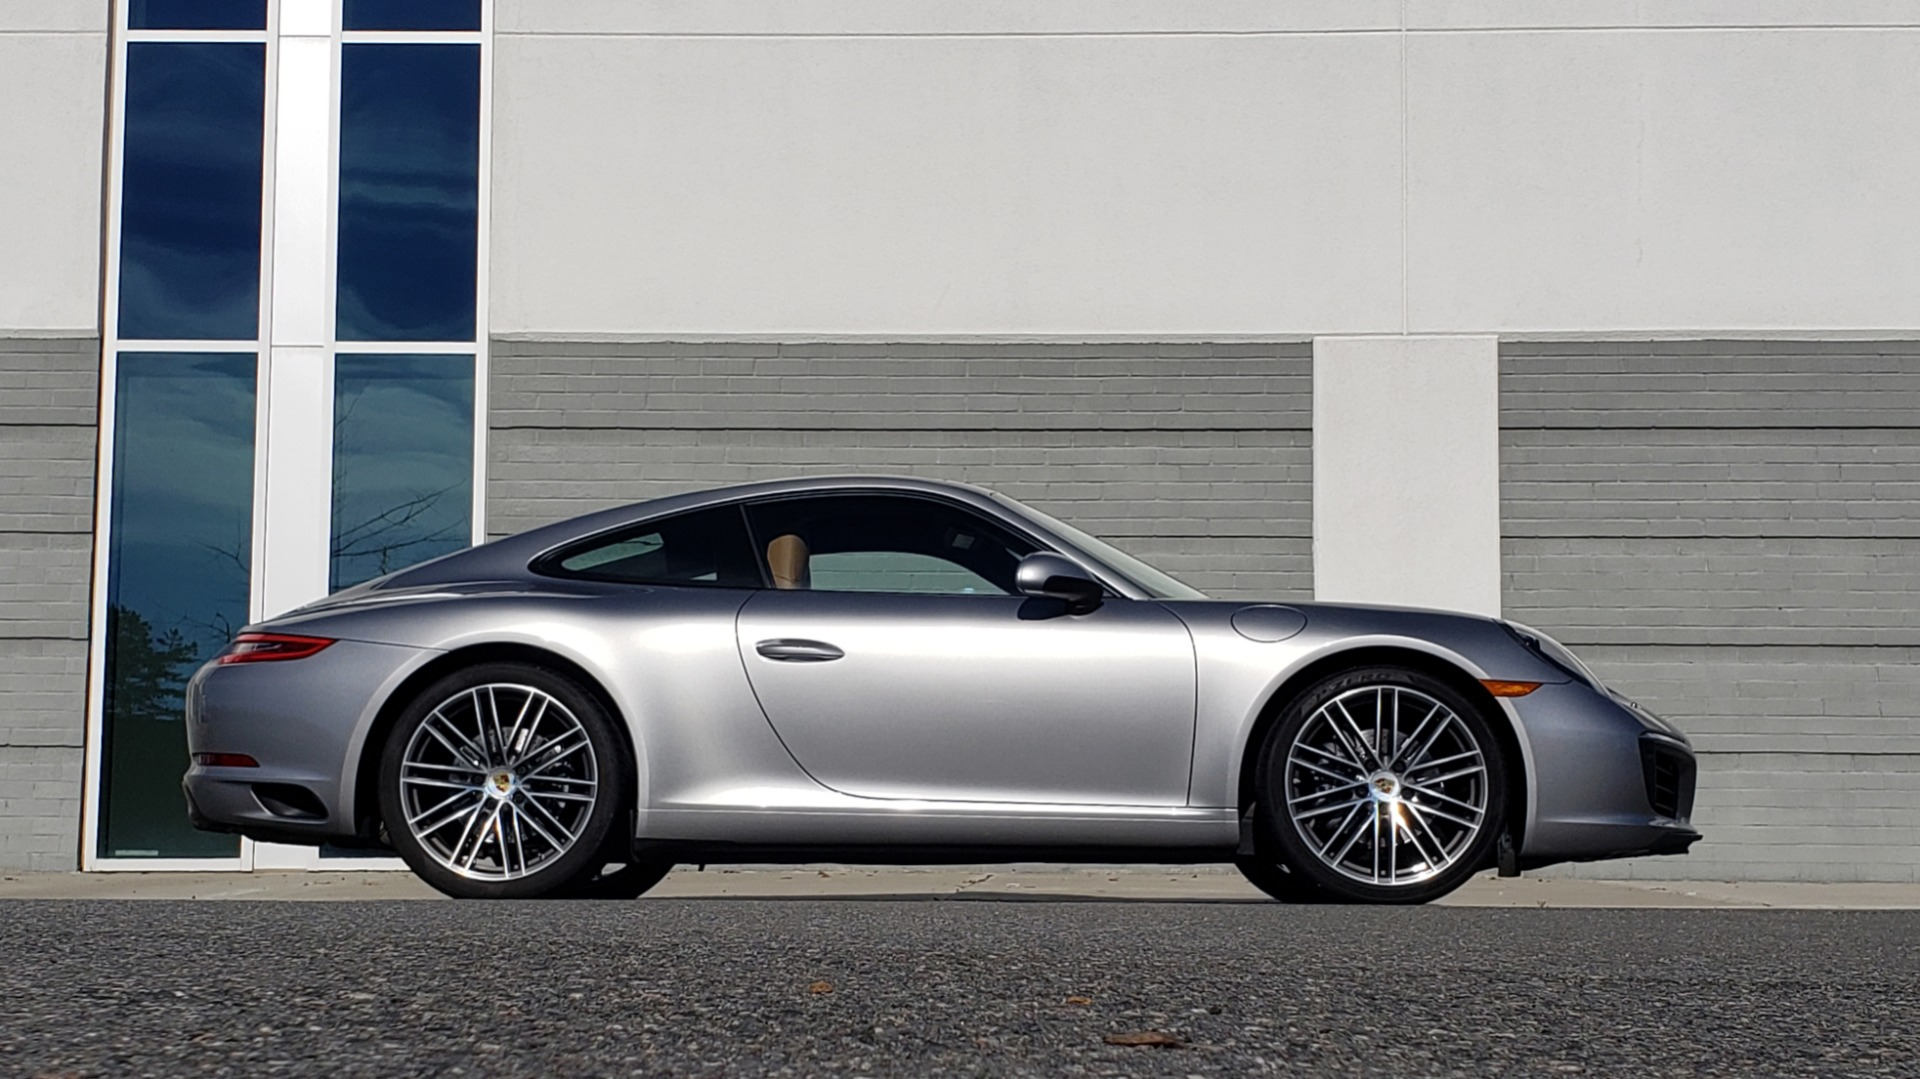 Used 2017 Porsche 911 CARRERA COUPE / 3.0L / 7-SPD MAN / NAV / PDLS / SUNROOF / REARVIEW for sale Sold at Formula Imports in Charlotte NC 28227 7